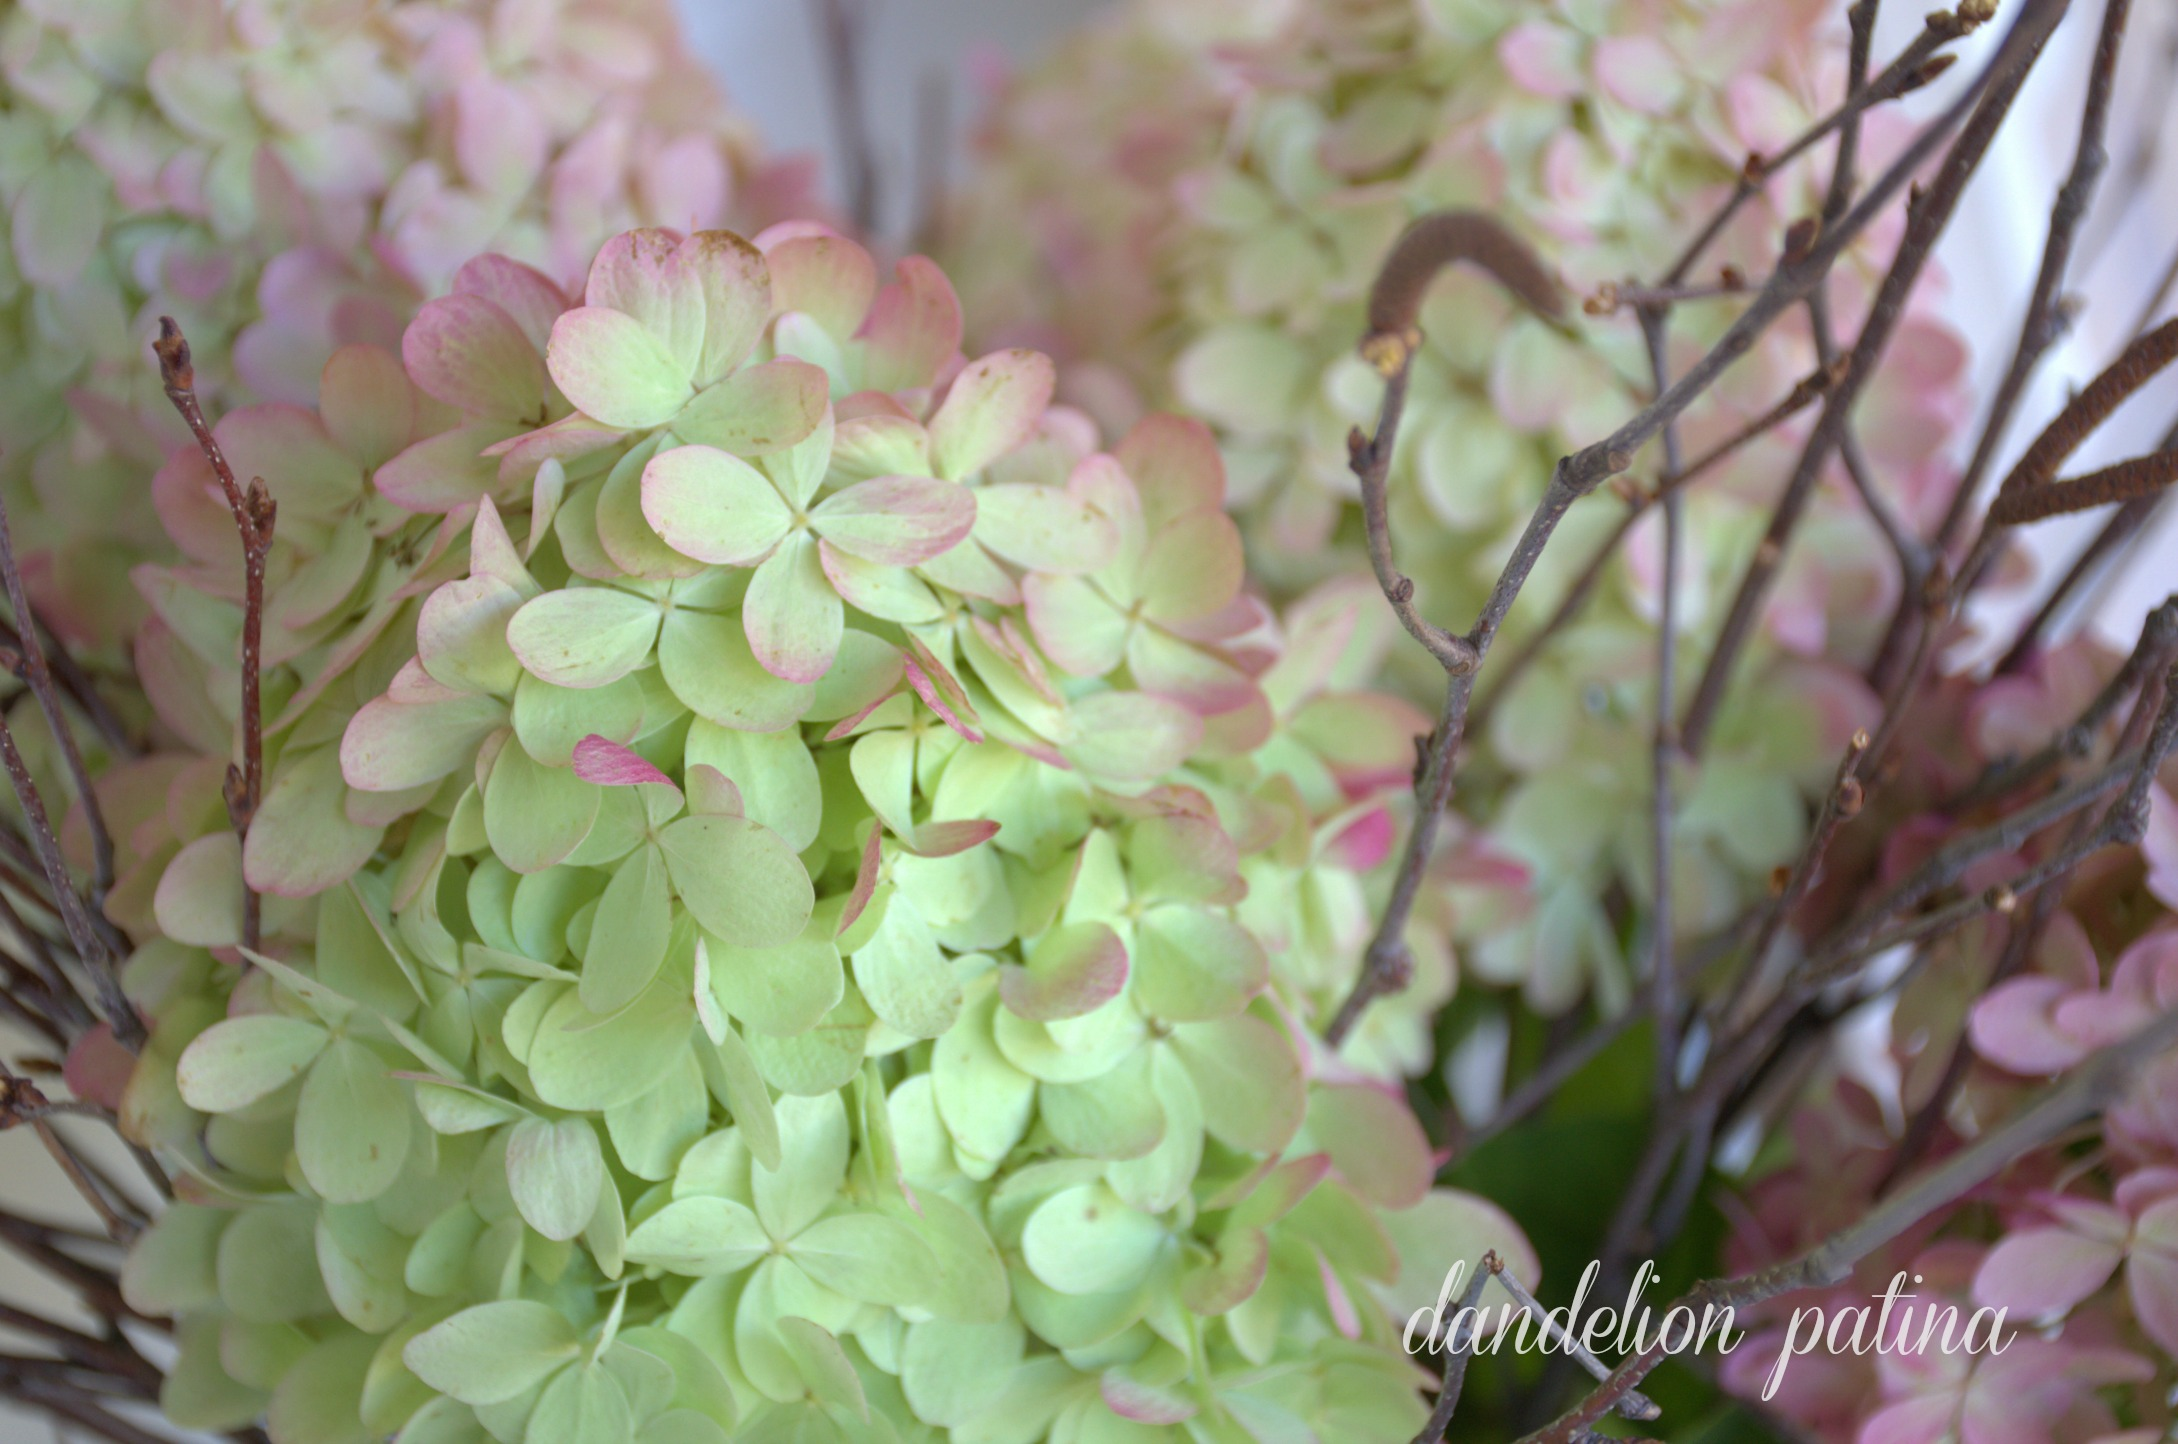 delicate petals of a limelight hydrangea